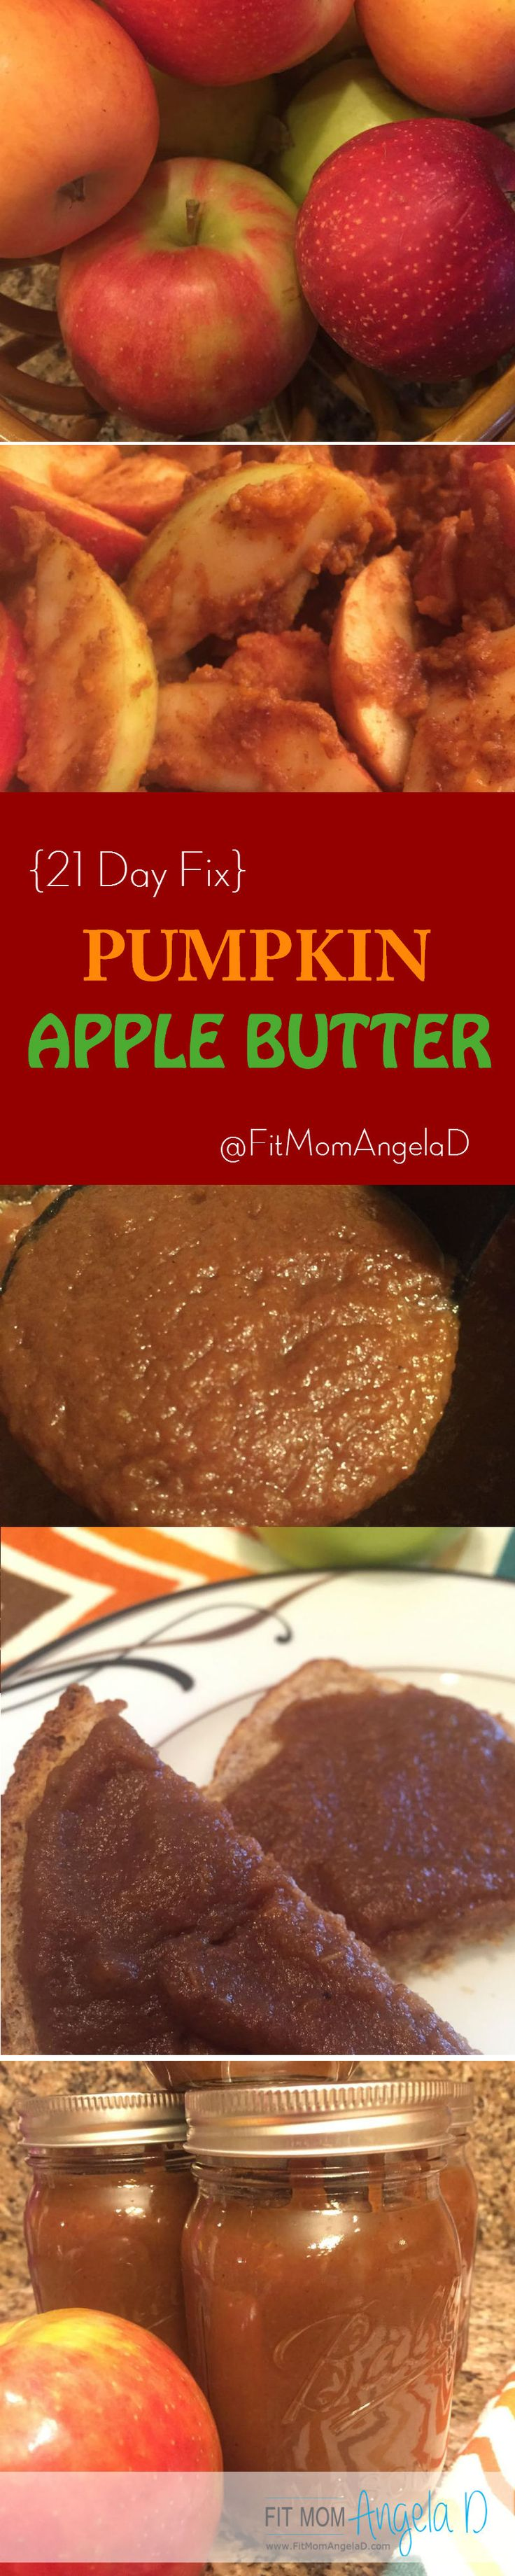 21 Day Fix Approved Pumpkin Apple Butter | Sugar Free | Gluten Free | Fall Eats | Healthy Recipe | www.fitmomangelad.com